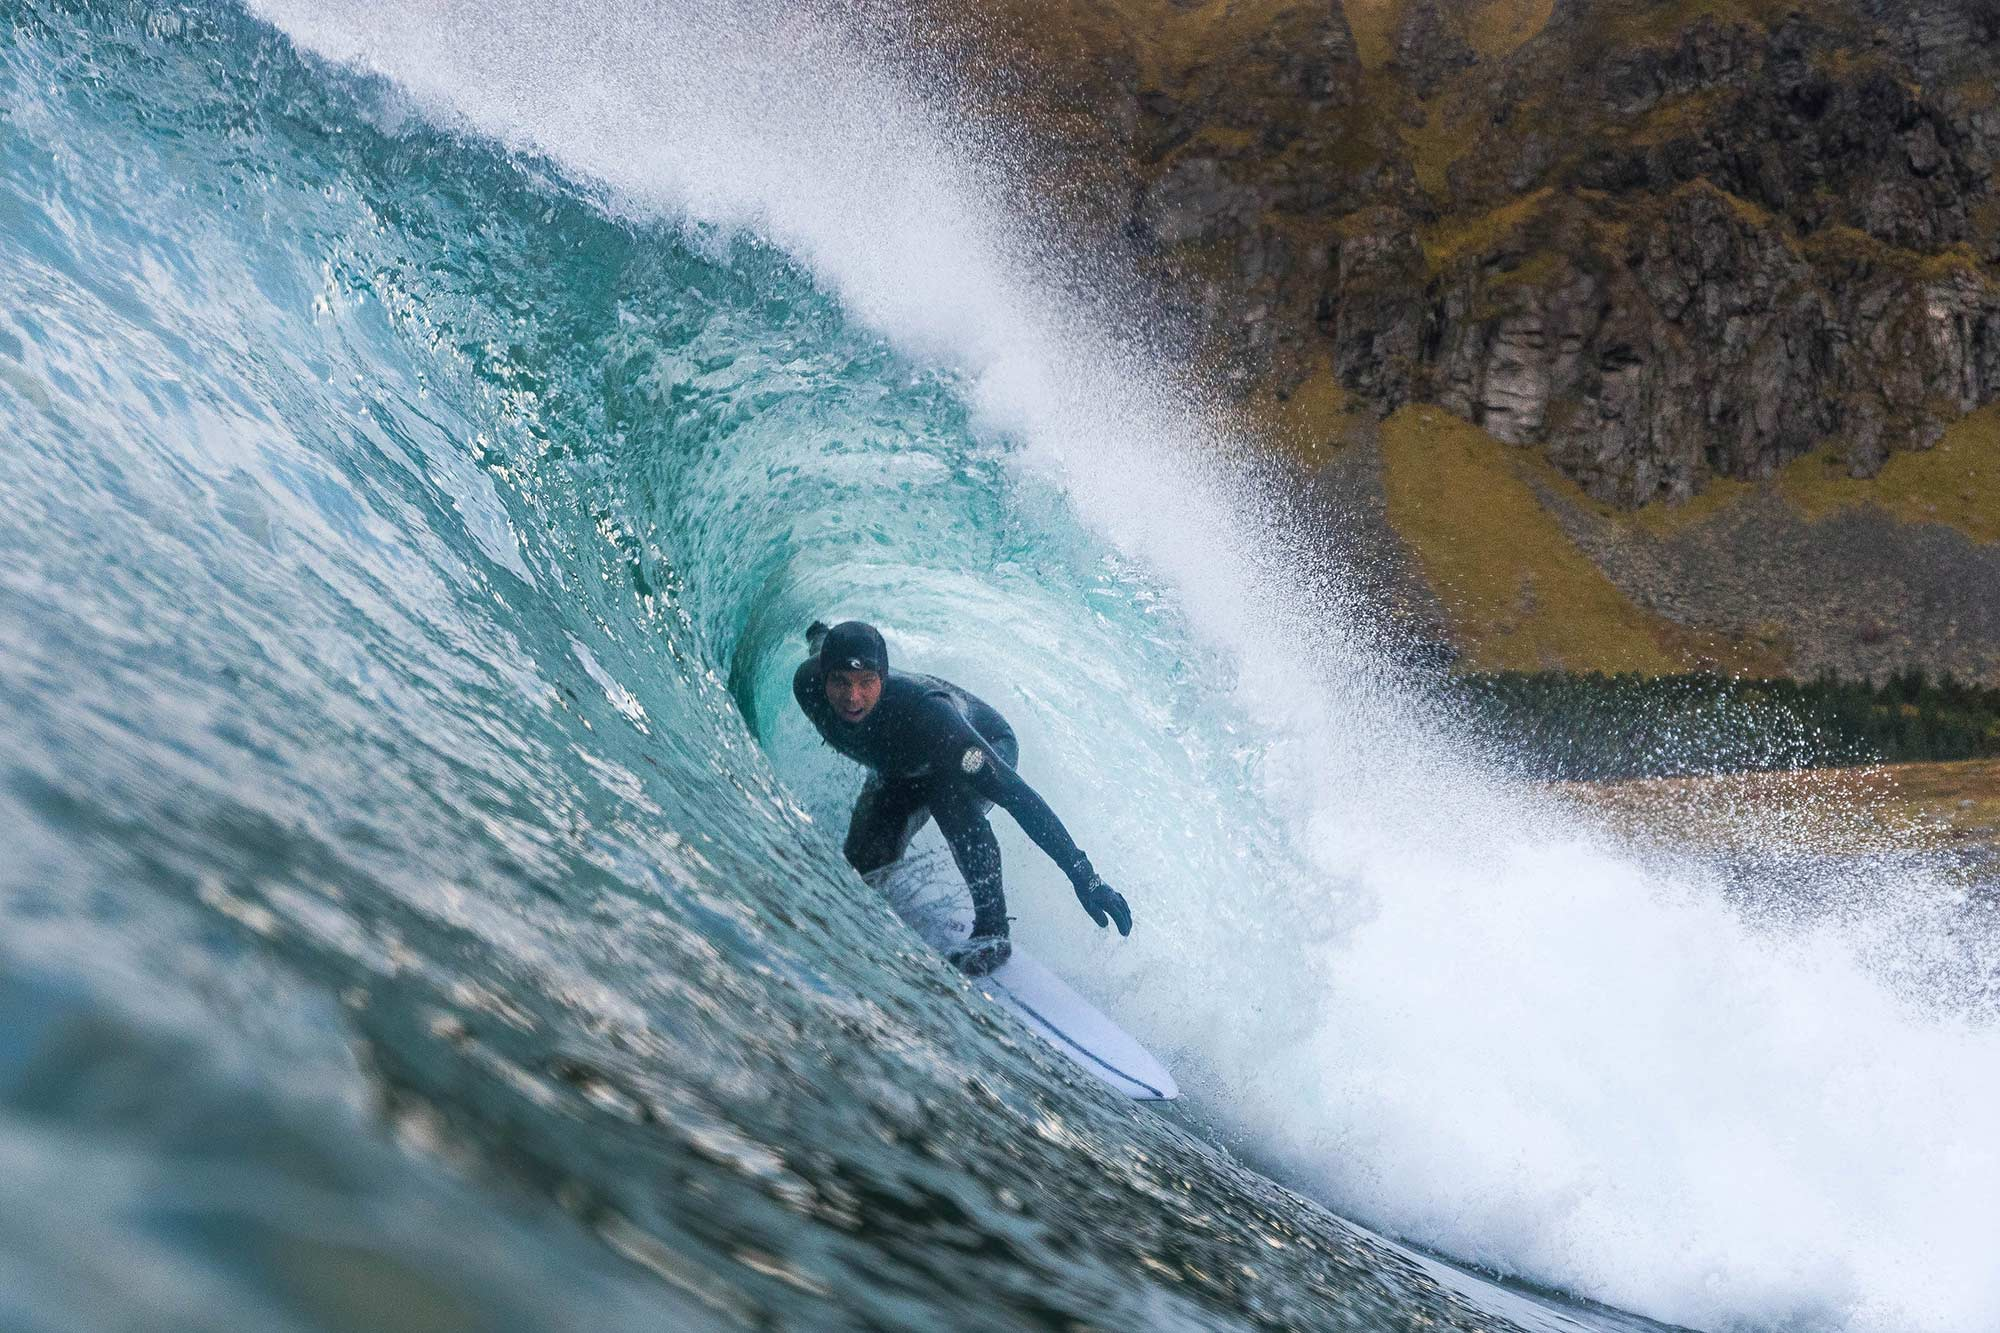 Surfing in Norway